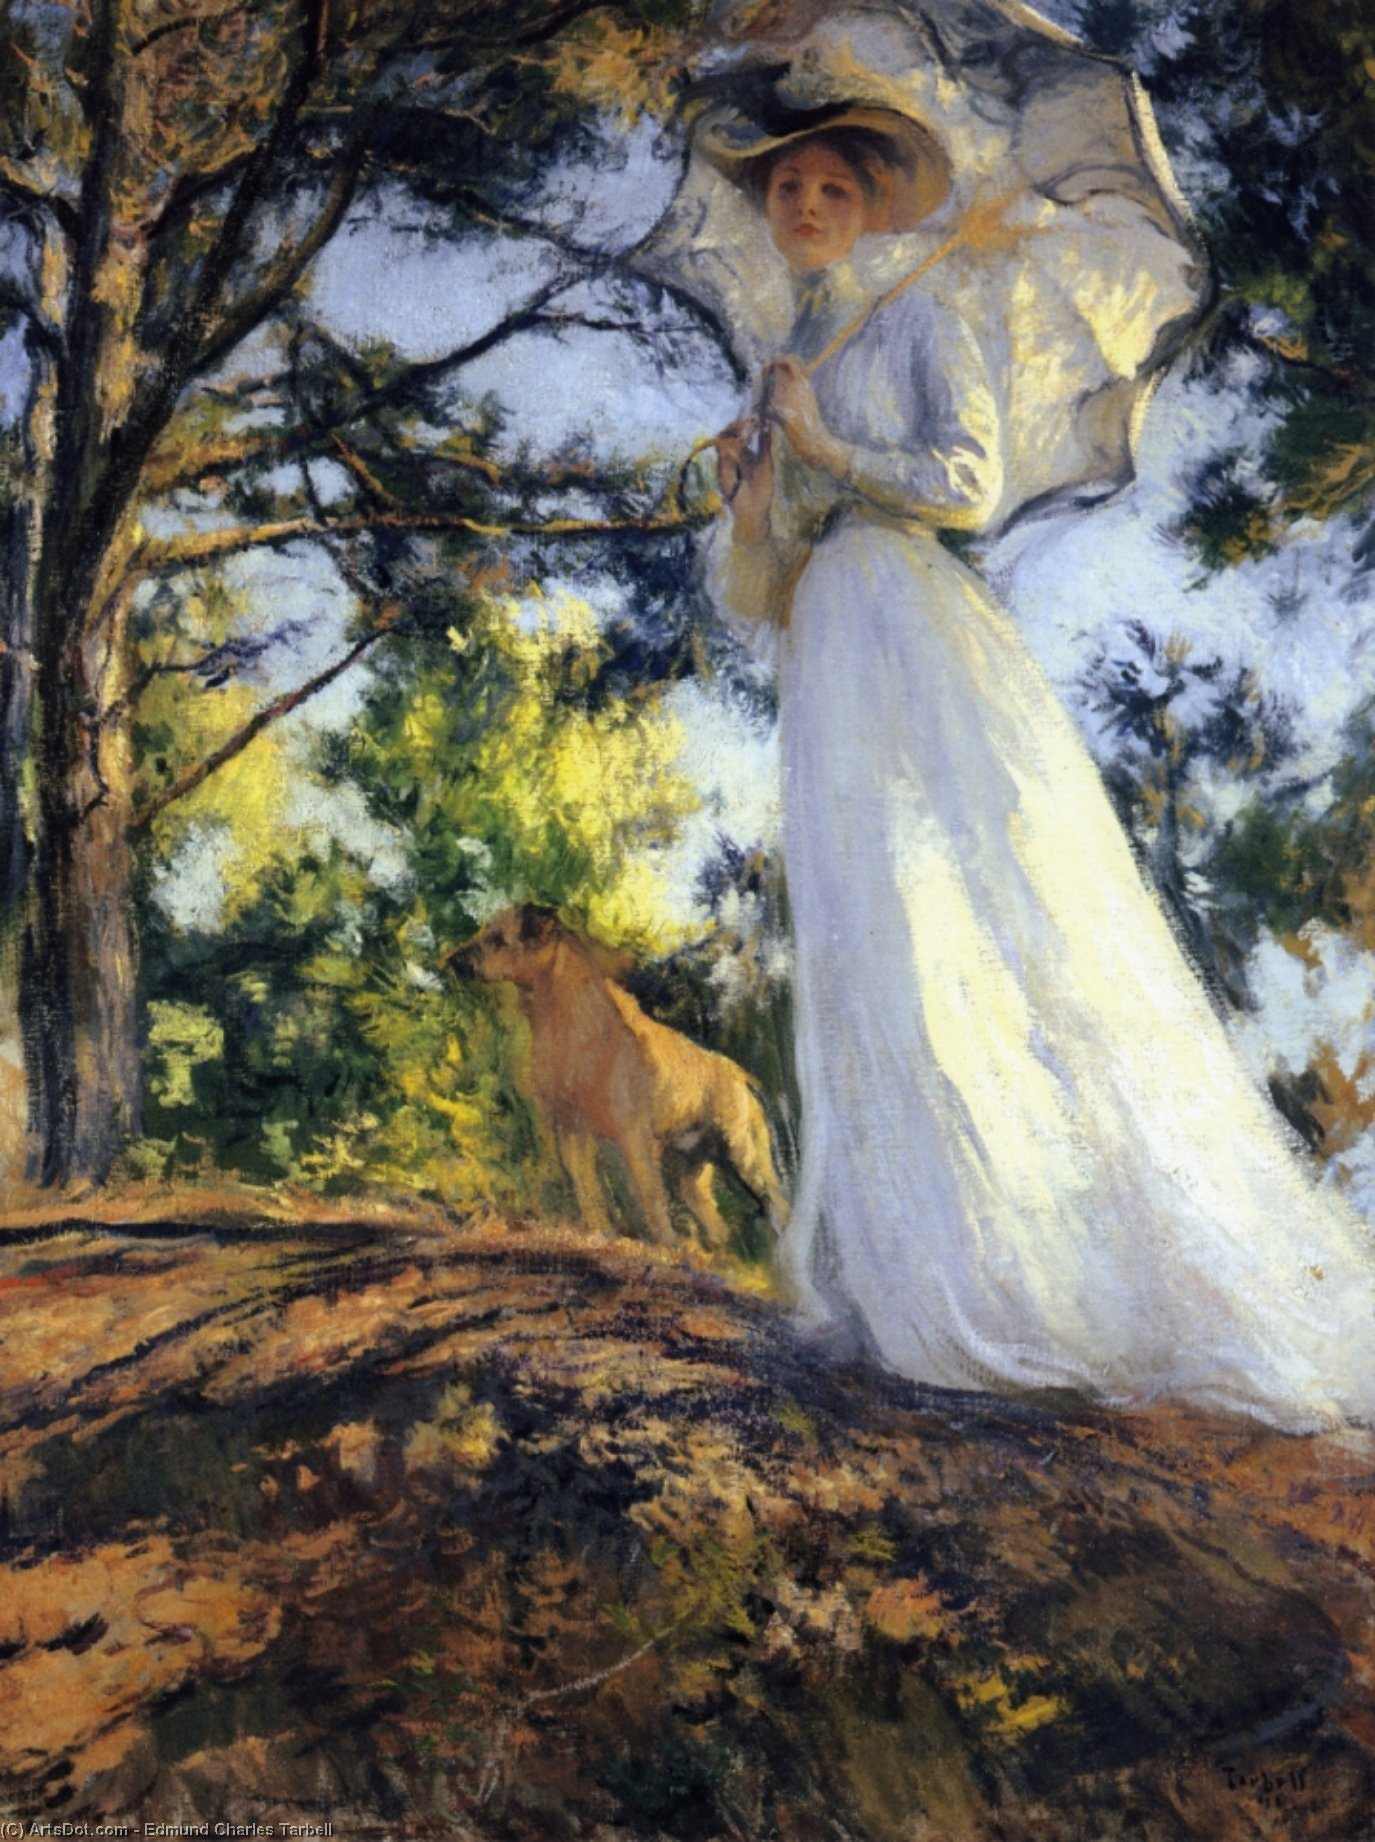 Sur Bos'n's Colline, huile sur toile de Edmund Charles Tarbell (1862-1938, United States)